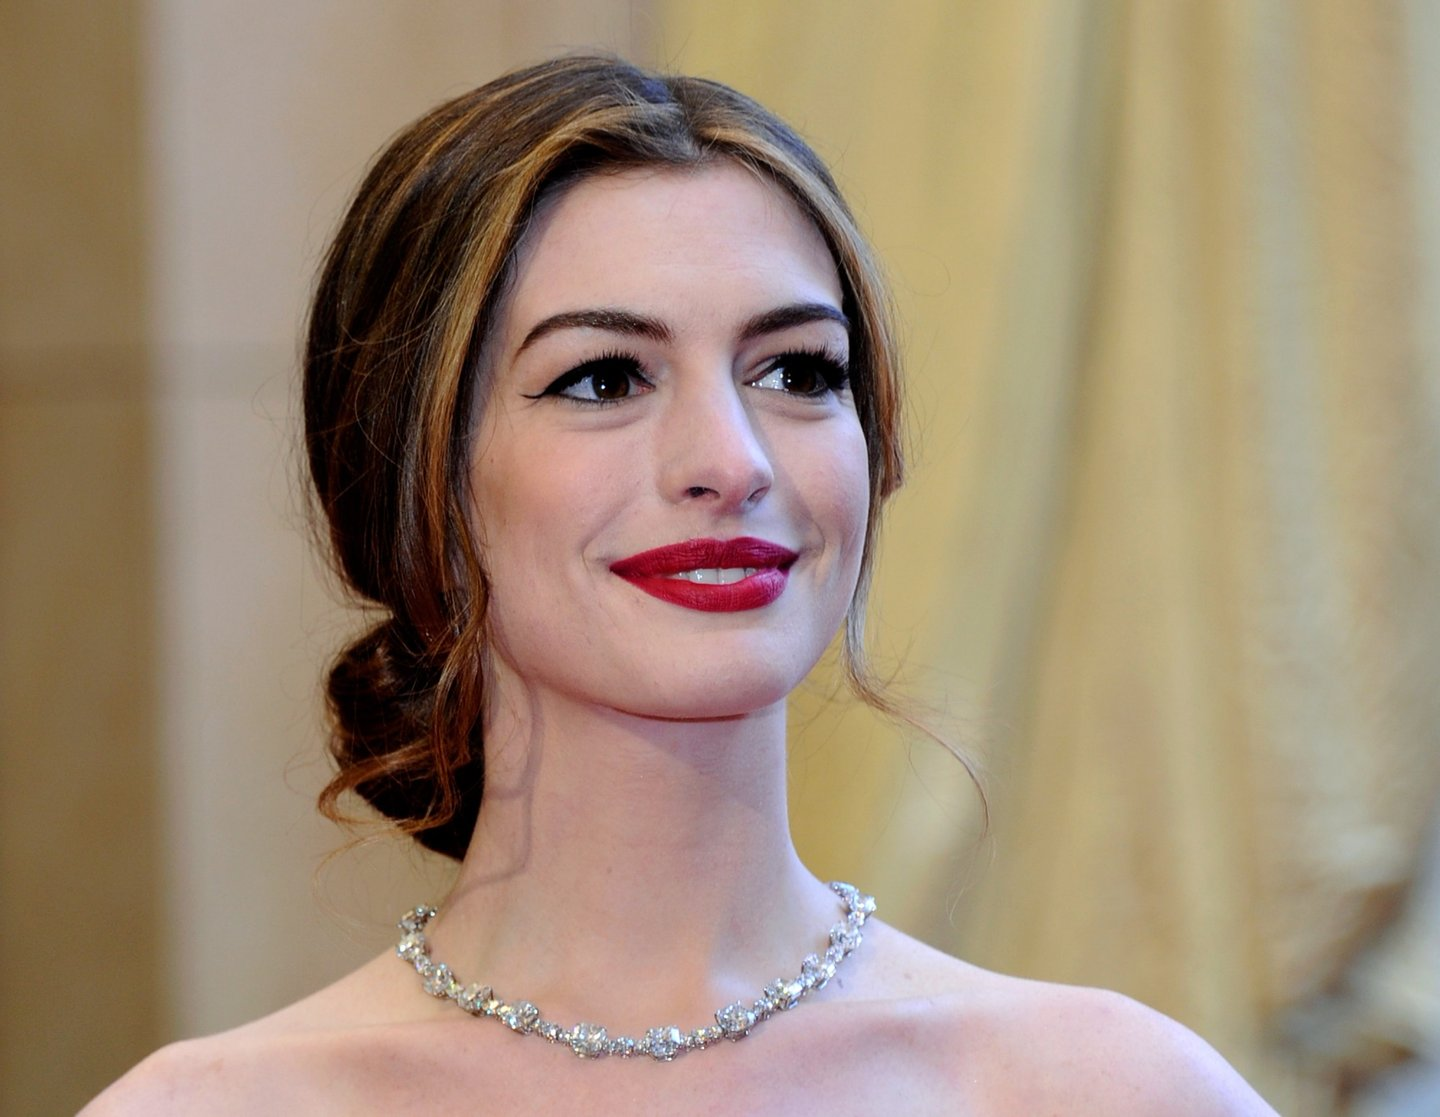 HOLLYWOOD, CA - FEBRUARY 27: Actress Anne Hathaway arrives at the 83rd Annual Academy Awards at the Kodak Theatre February 27, 2011 in Hollywood, California. (Photo by Ethan Miller/Getty Images)